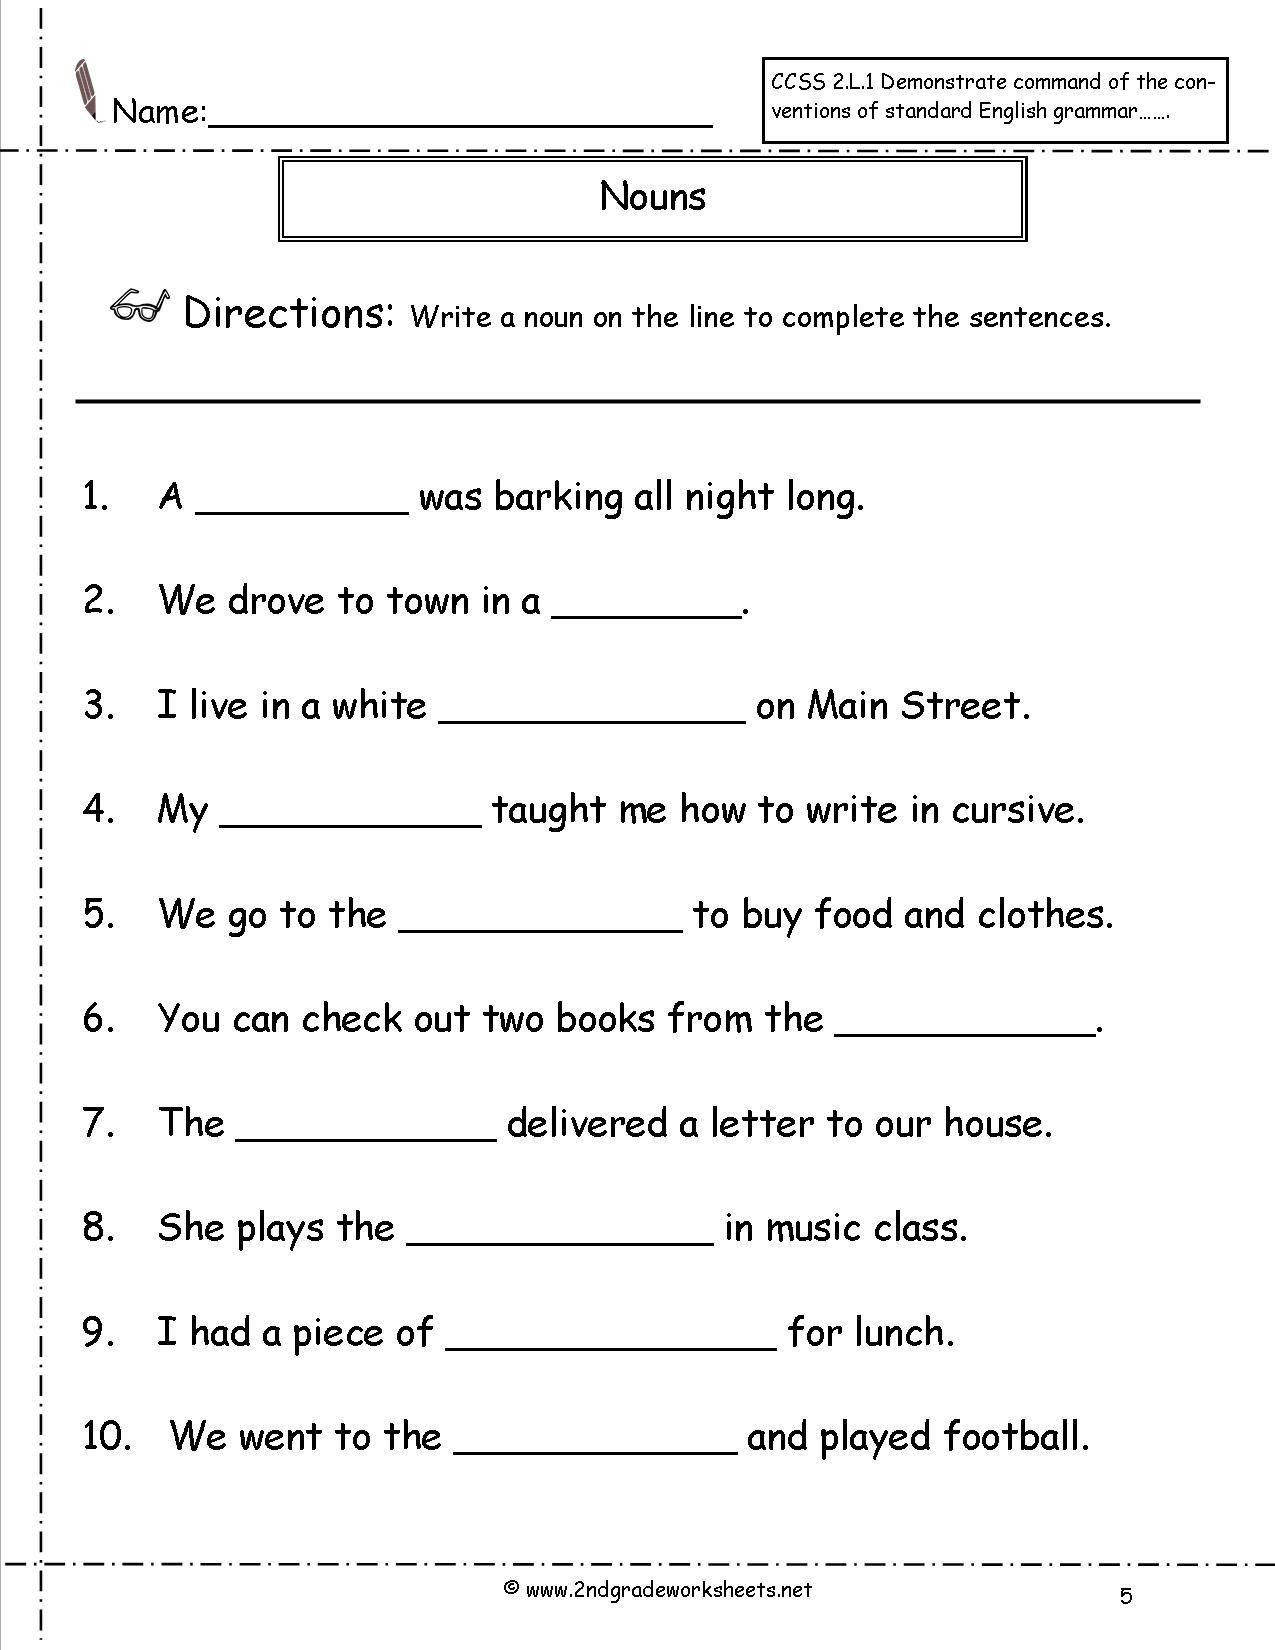 Grammar Worksheet 6th Grade Grammar Worksheets 6th Graders – Worksheet for Kids